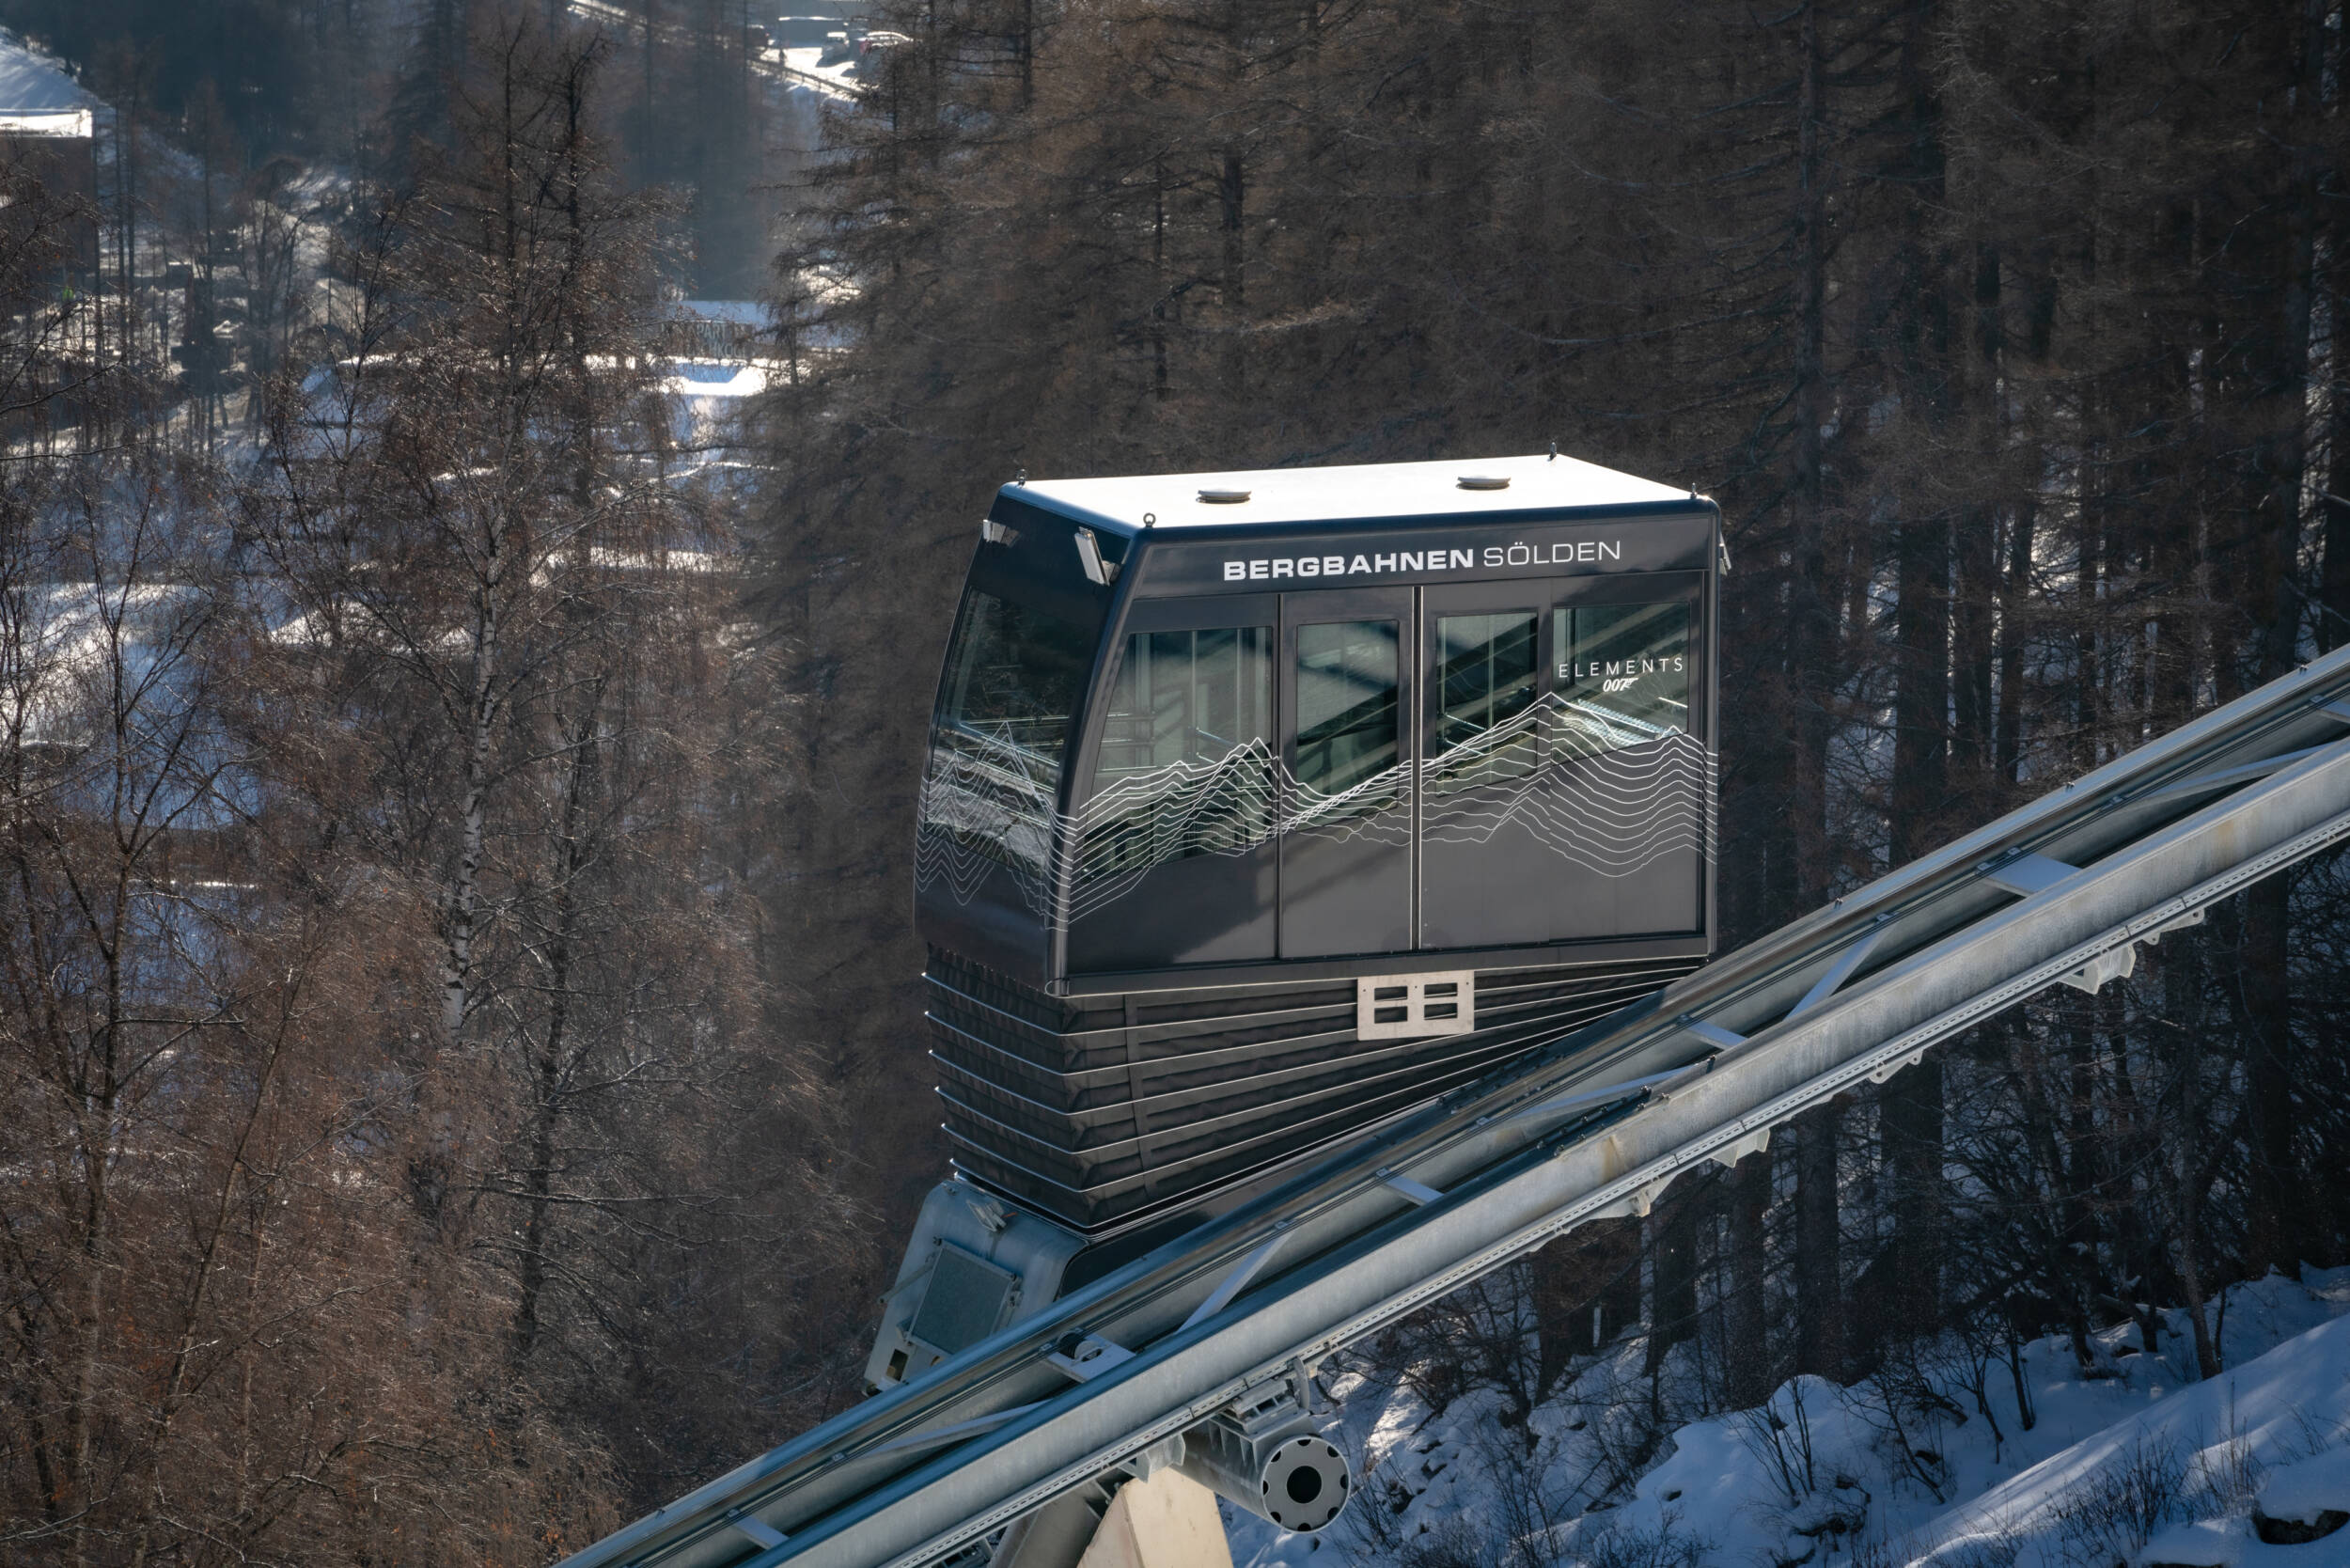 soelden hauptbild - Innerwaldshuttle I + II, Sölden, AT